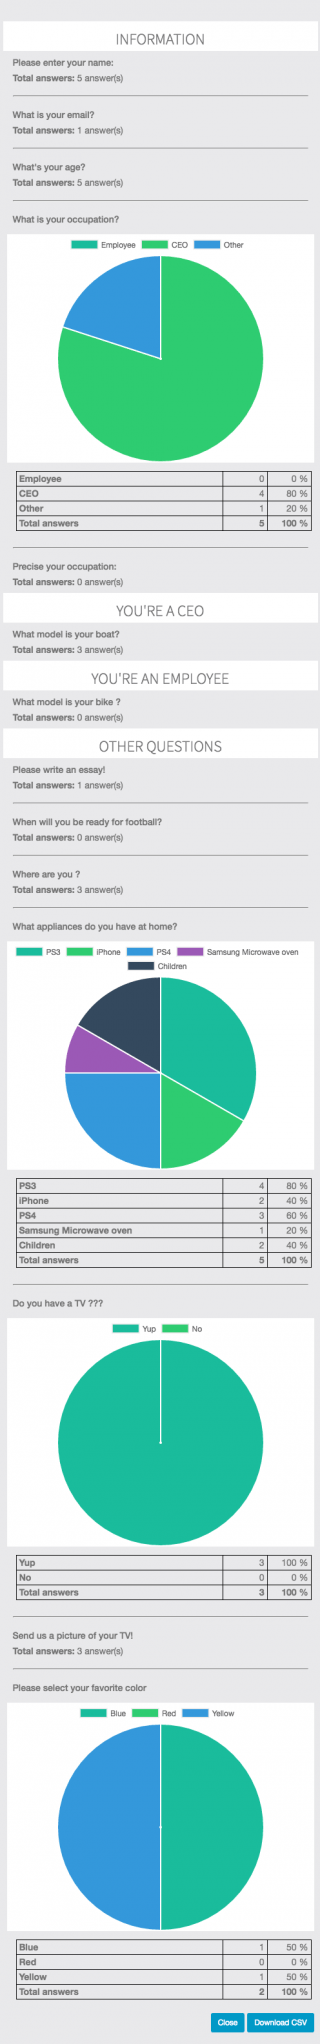 survey_results_view_01